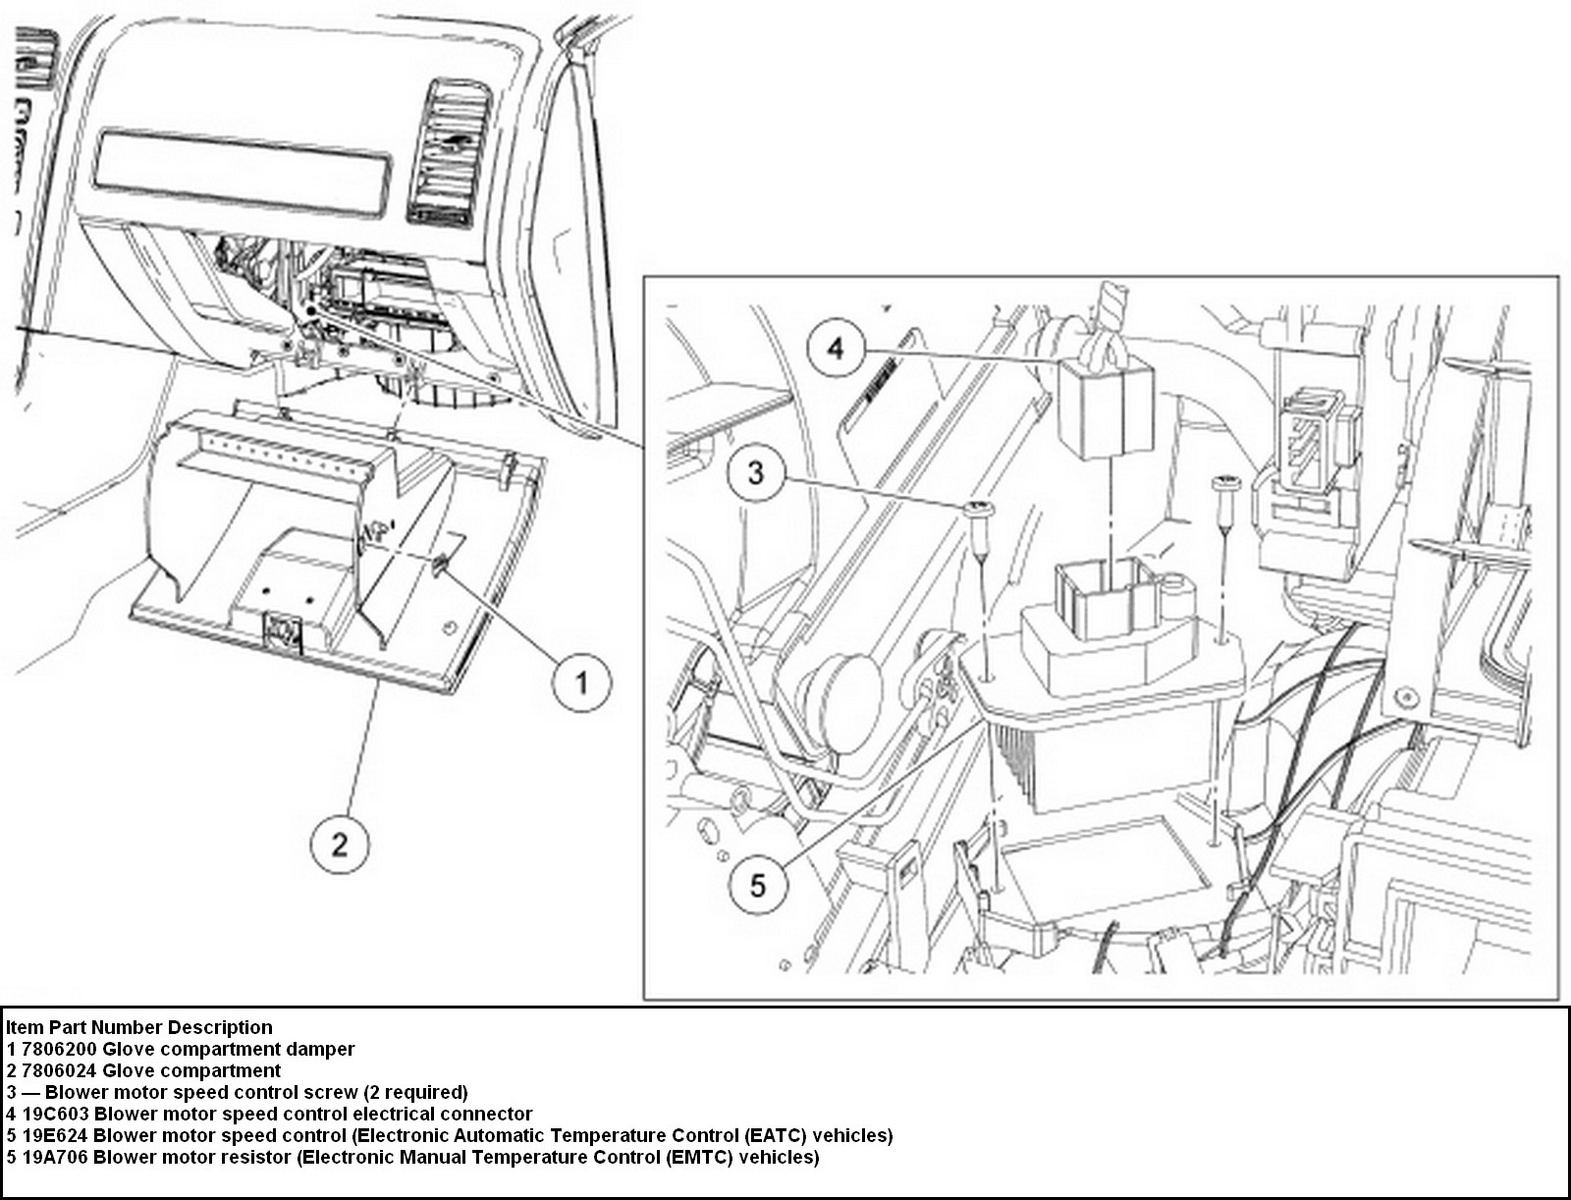 2002 Jeep Grand Cherokee Blower Motor Wiring Diagram Library 2000 Light Diagrams Radio 1 Answer